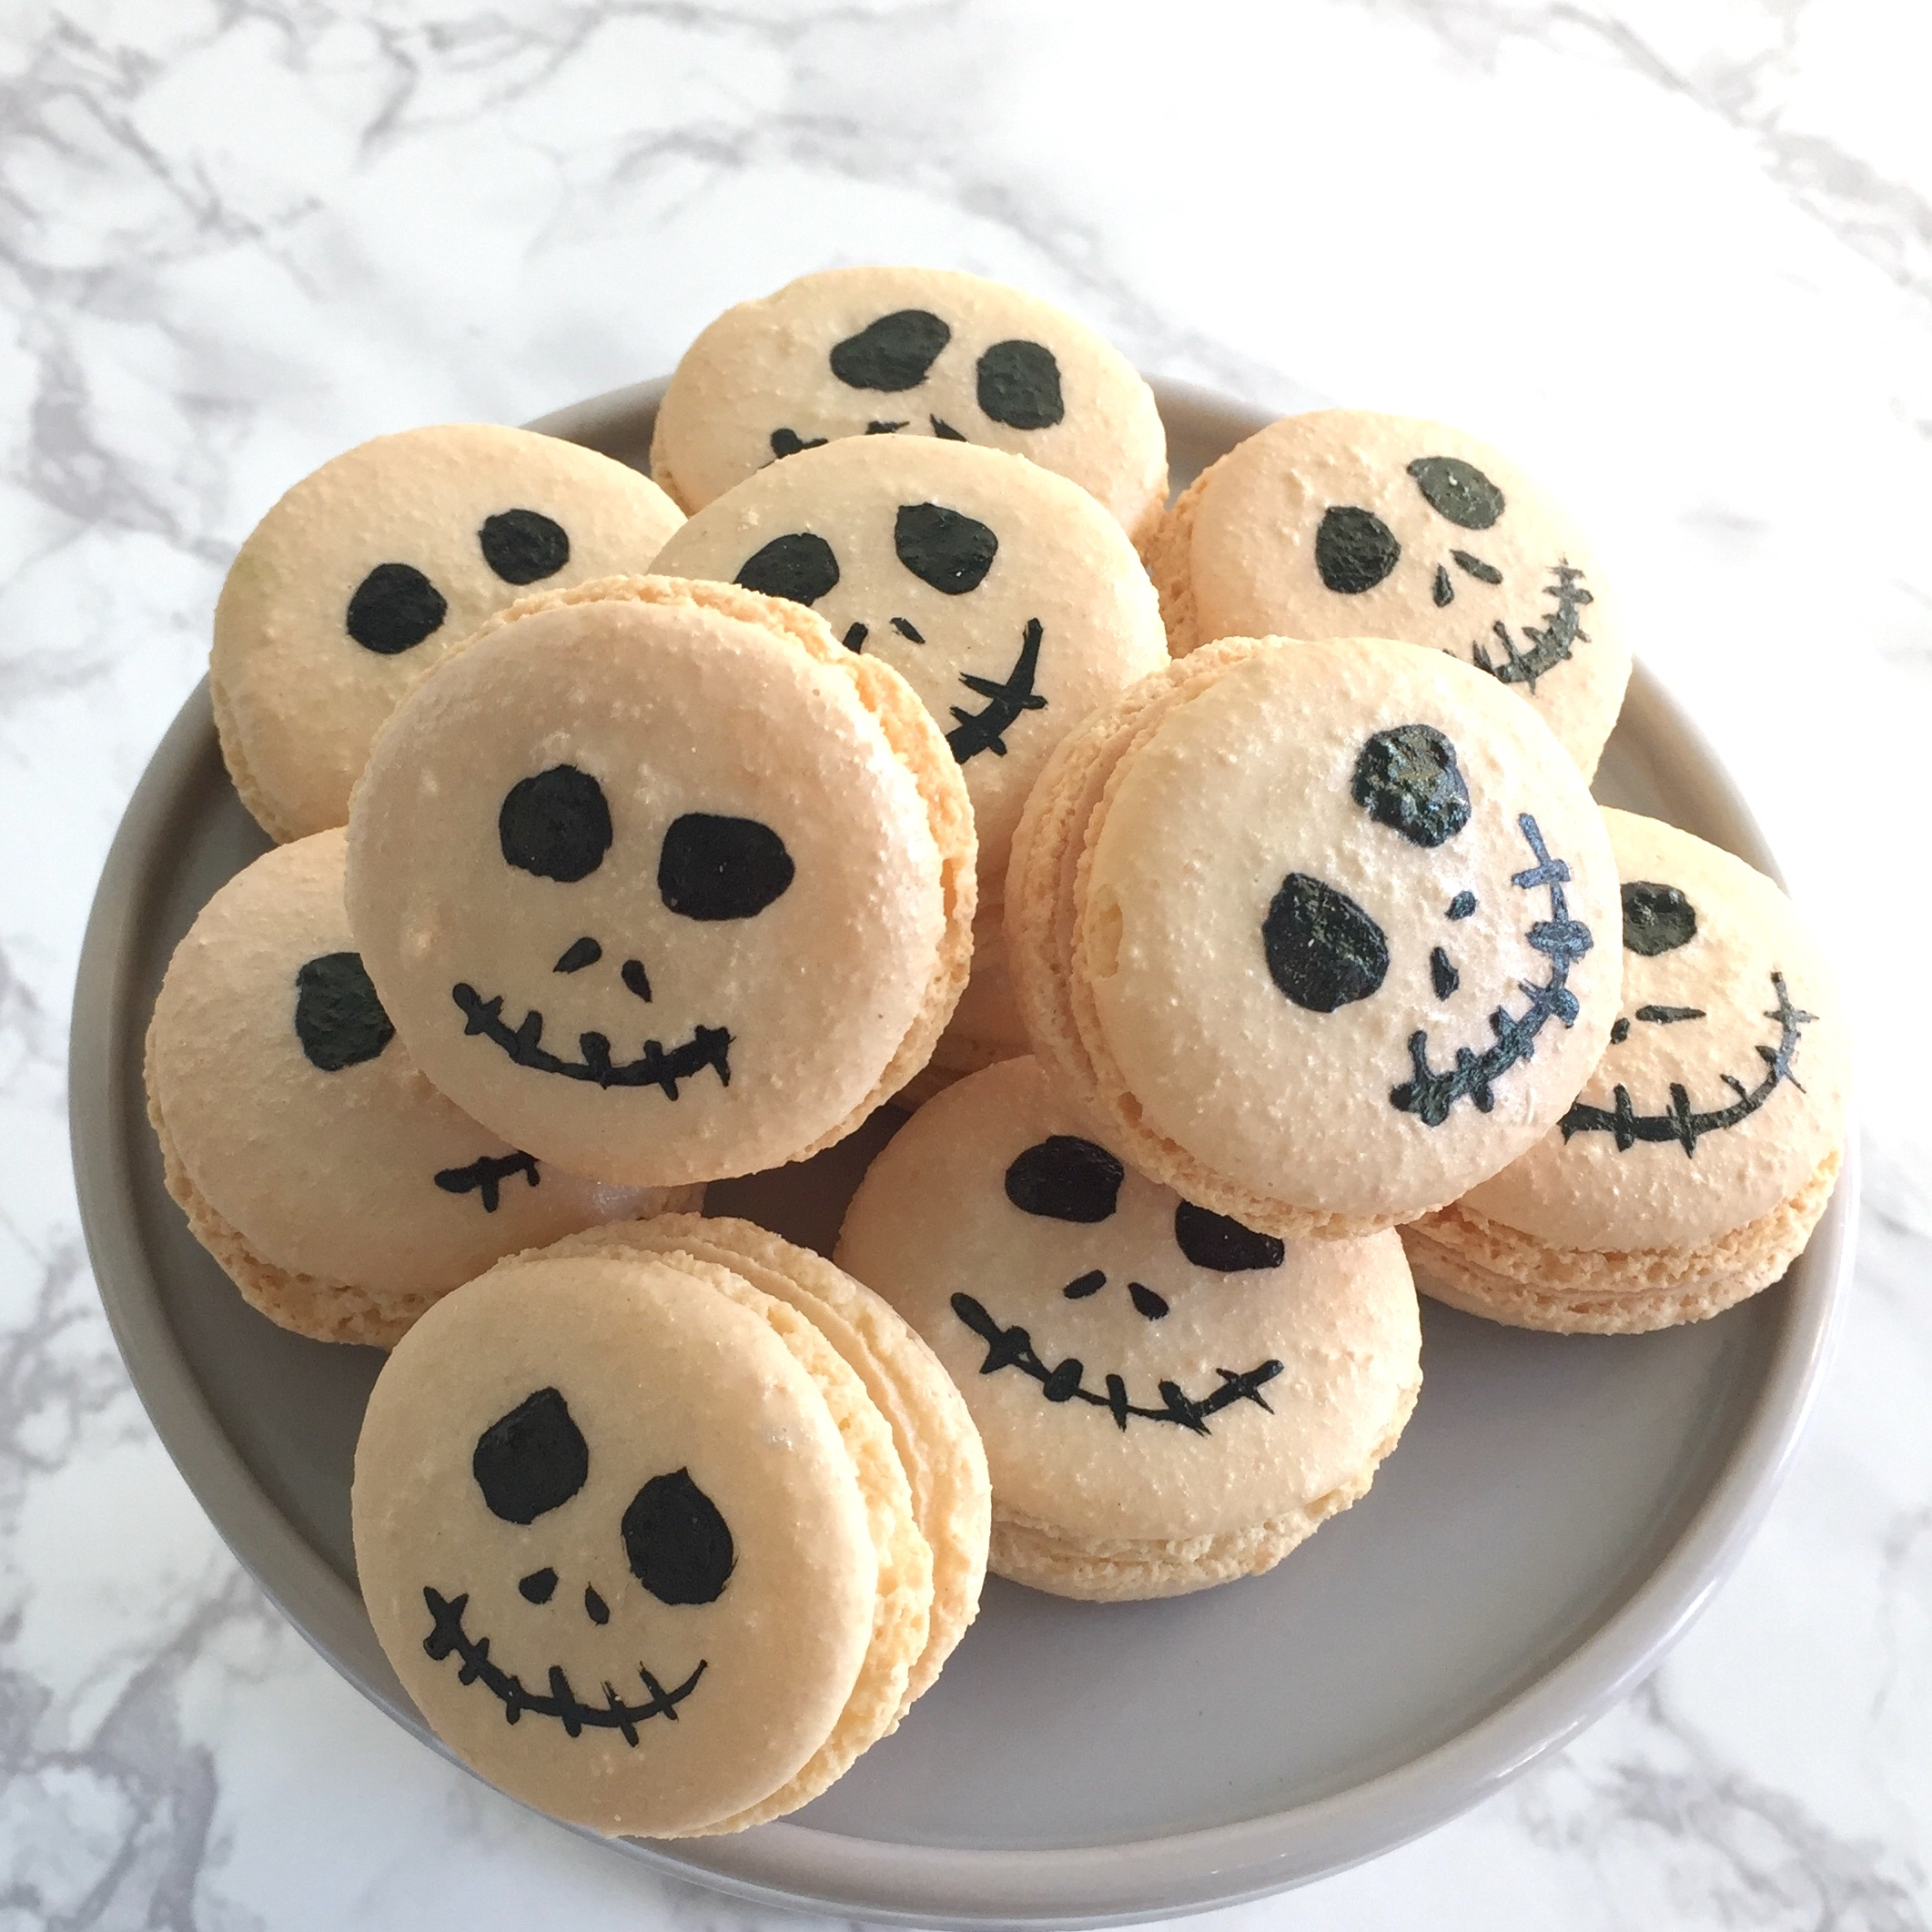 Skellington Macarons  Vanilla French Macarons ready for a spooky time!   $32